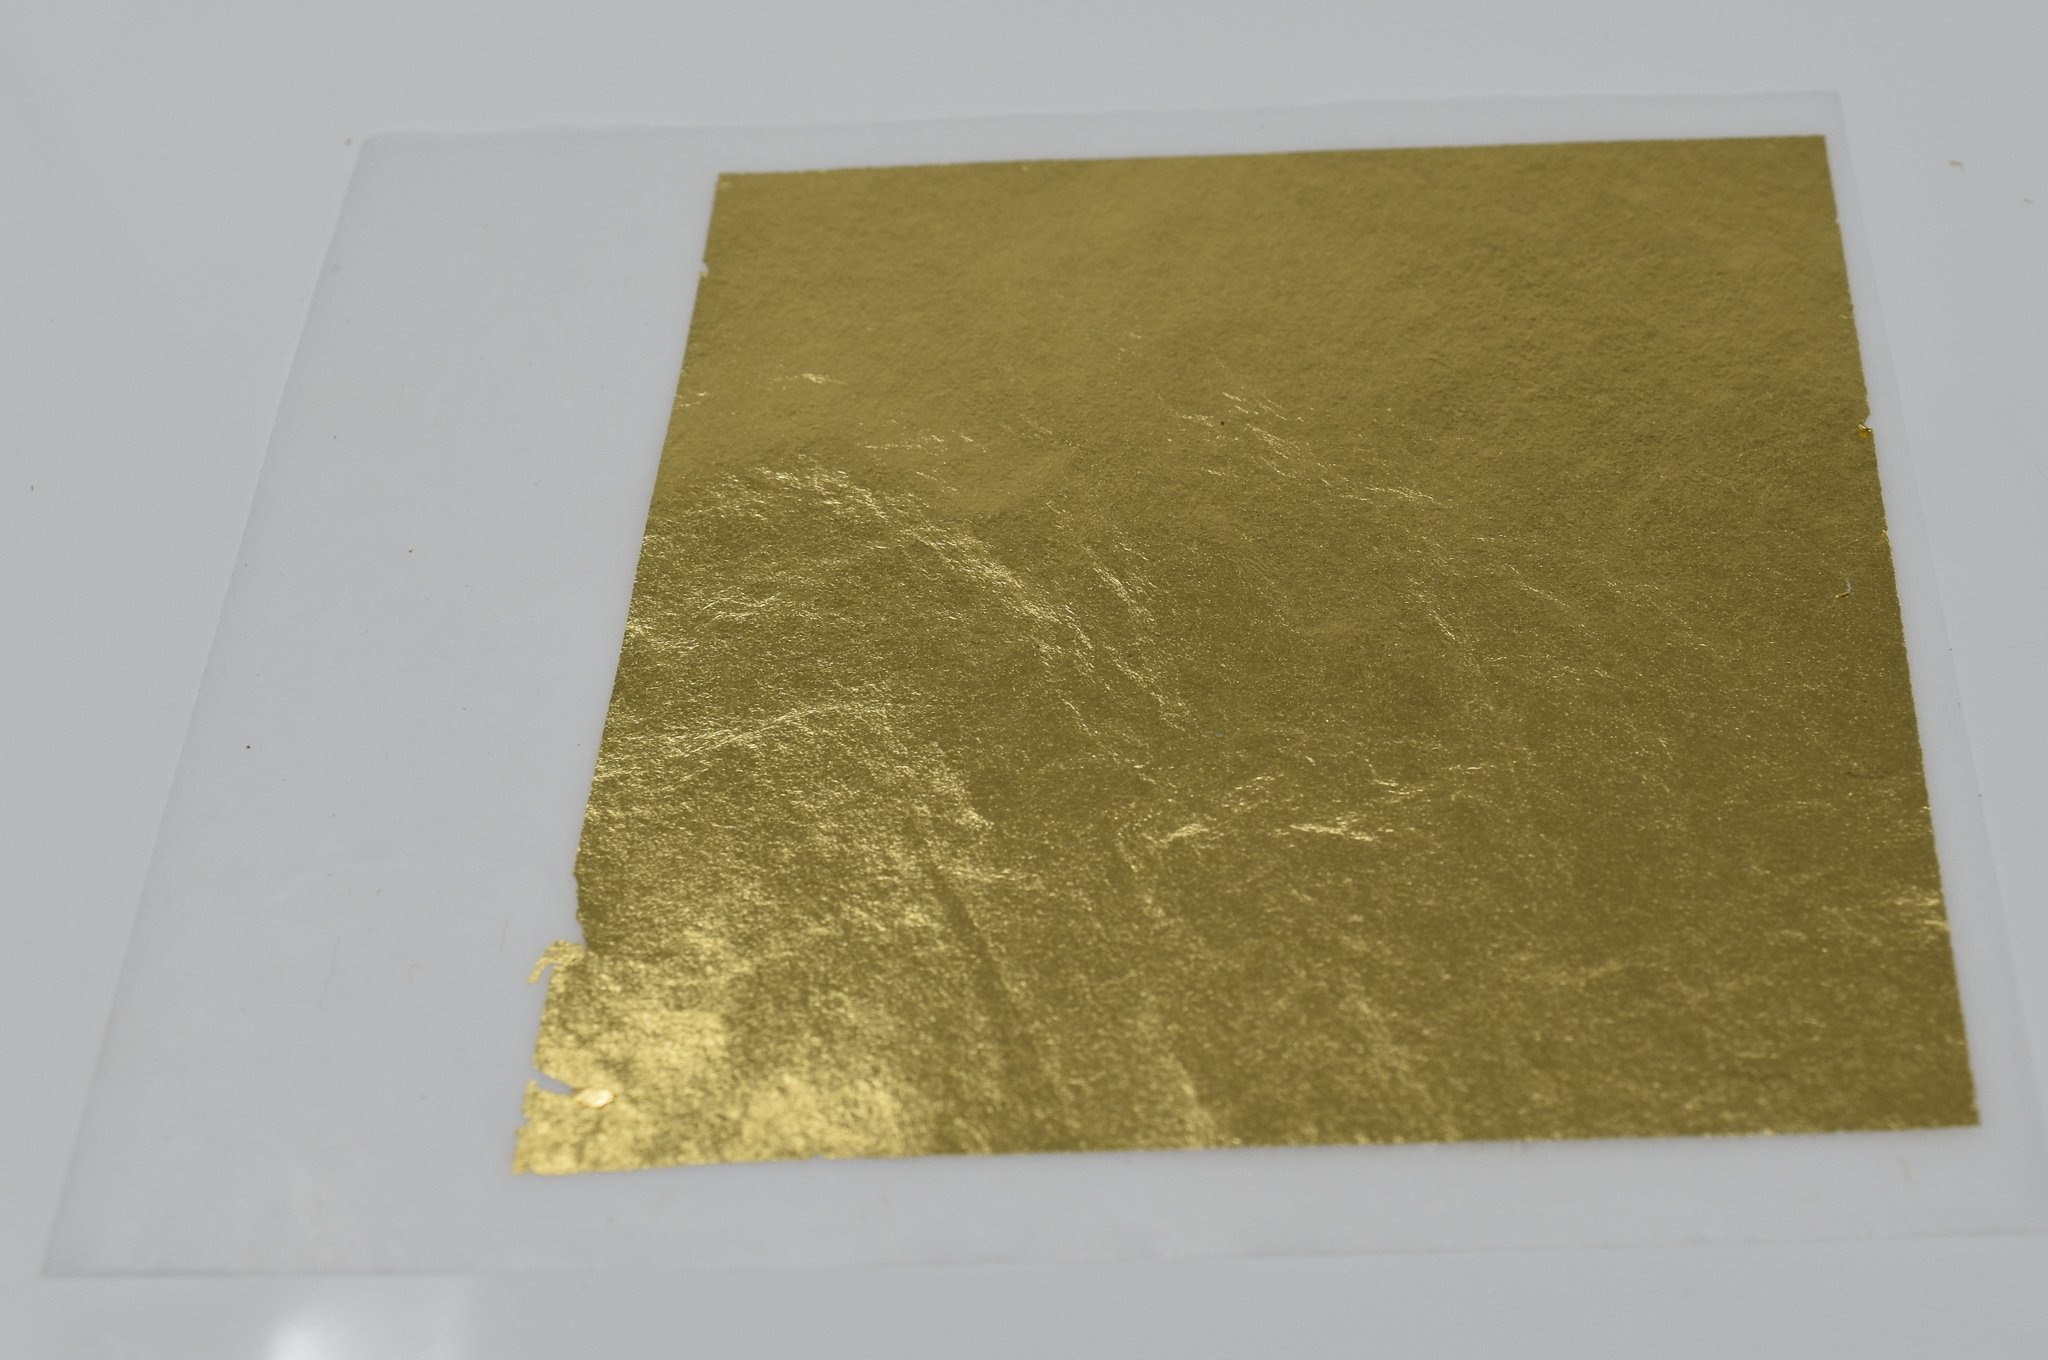 24 Karat Edible Gold Leaf Firm Transfer Sheets by Slofoodgroup (Hard Press Transfer Sheets) 25 Sheets per Book, 3.15 in. by 3. 15 in. Hard Press Transfer Sheets by SLO FOOD GROUP (Image #5)